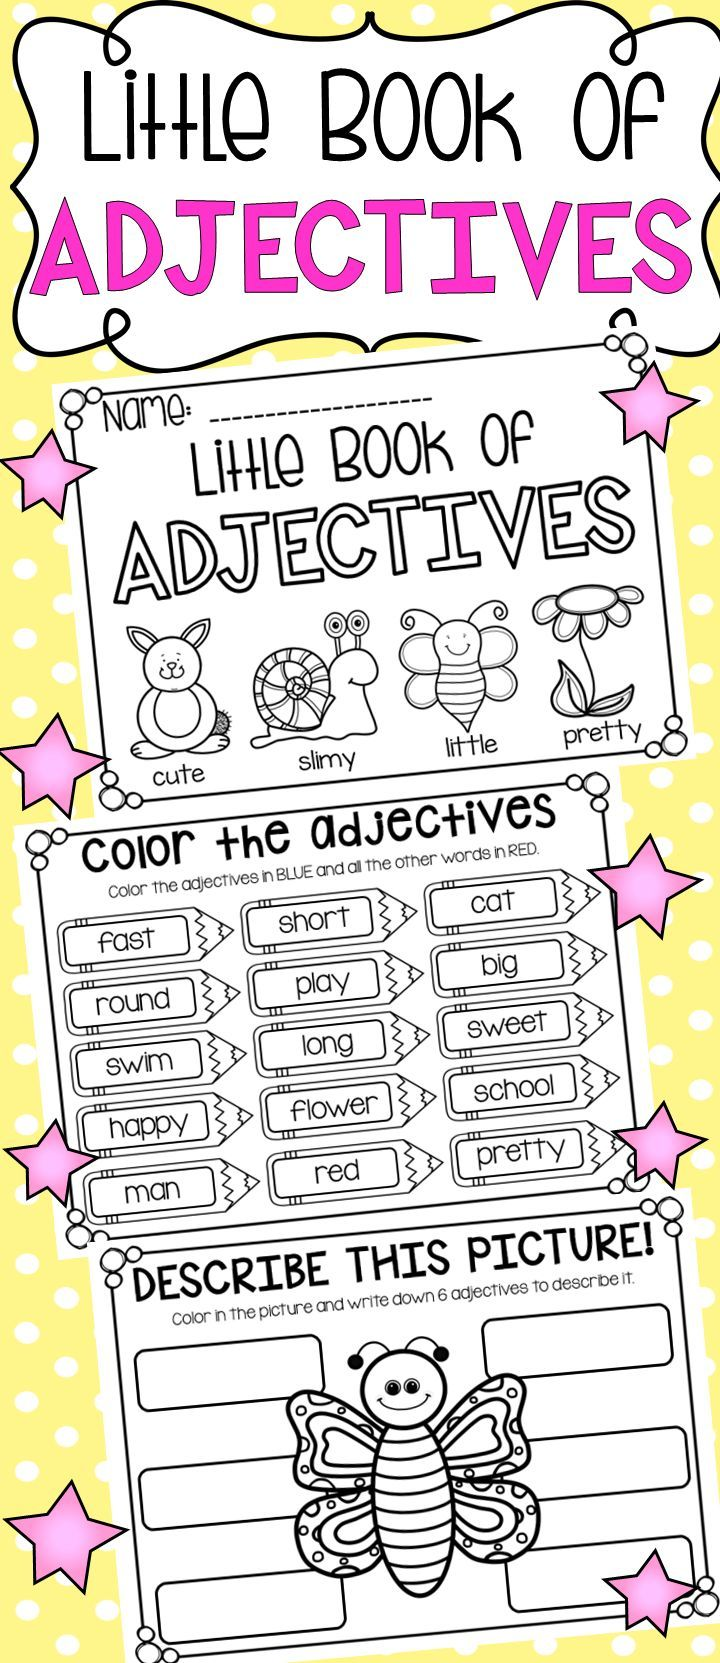 Worksheet Adjectives Printables 17 best ideas about adjectives activities on pinterest self esteem kids for and student birthday gifts